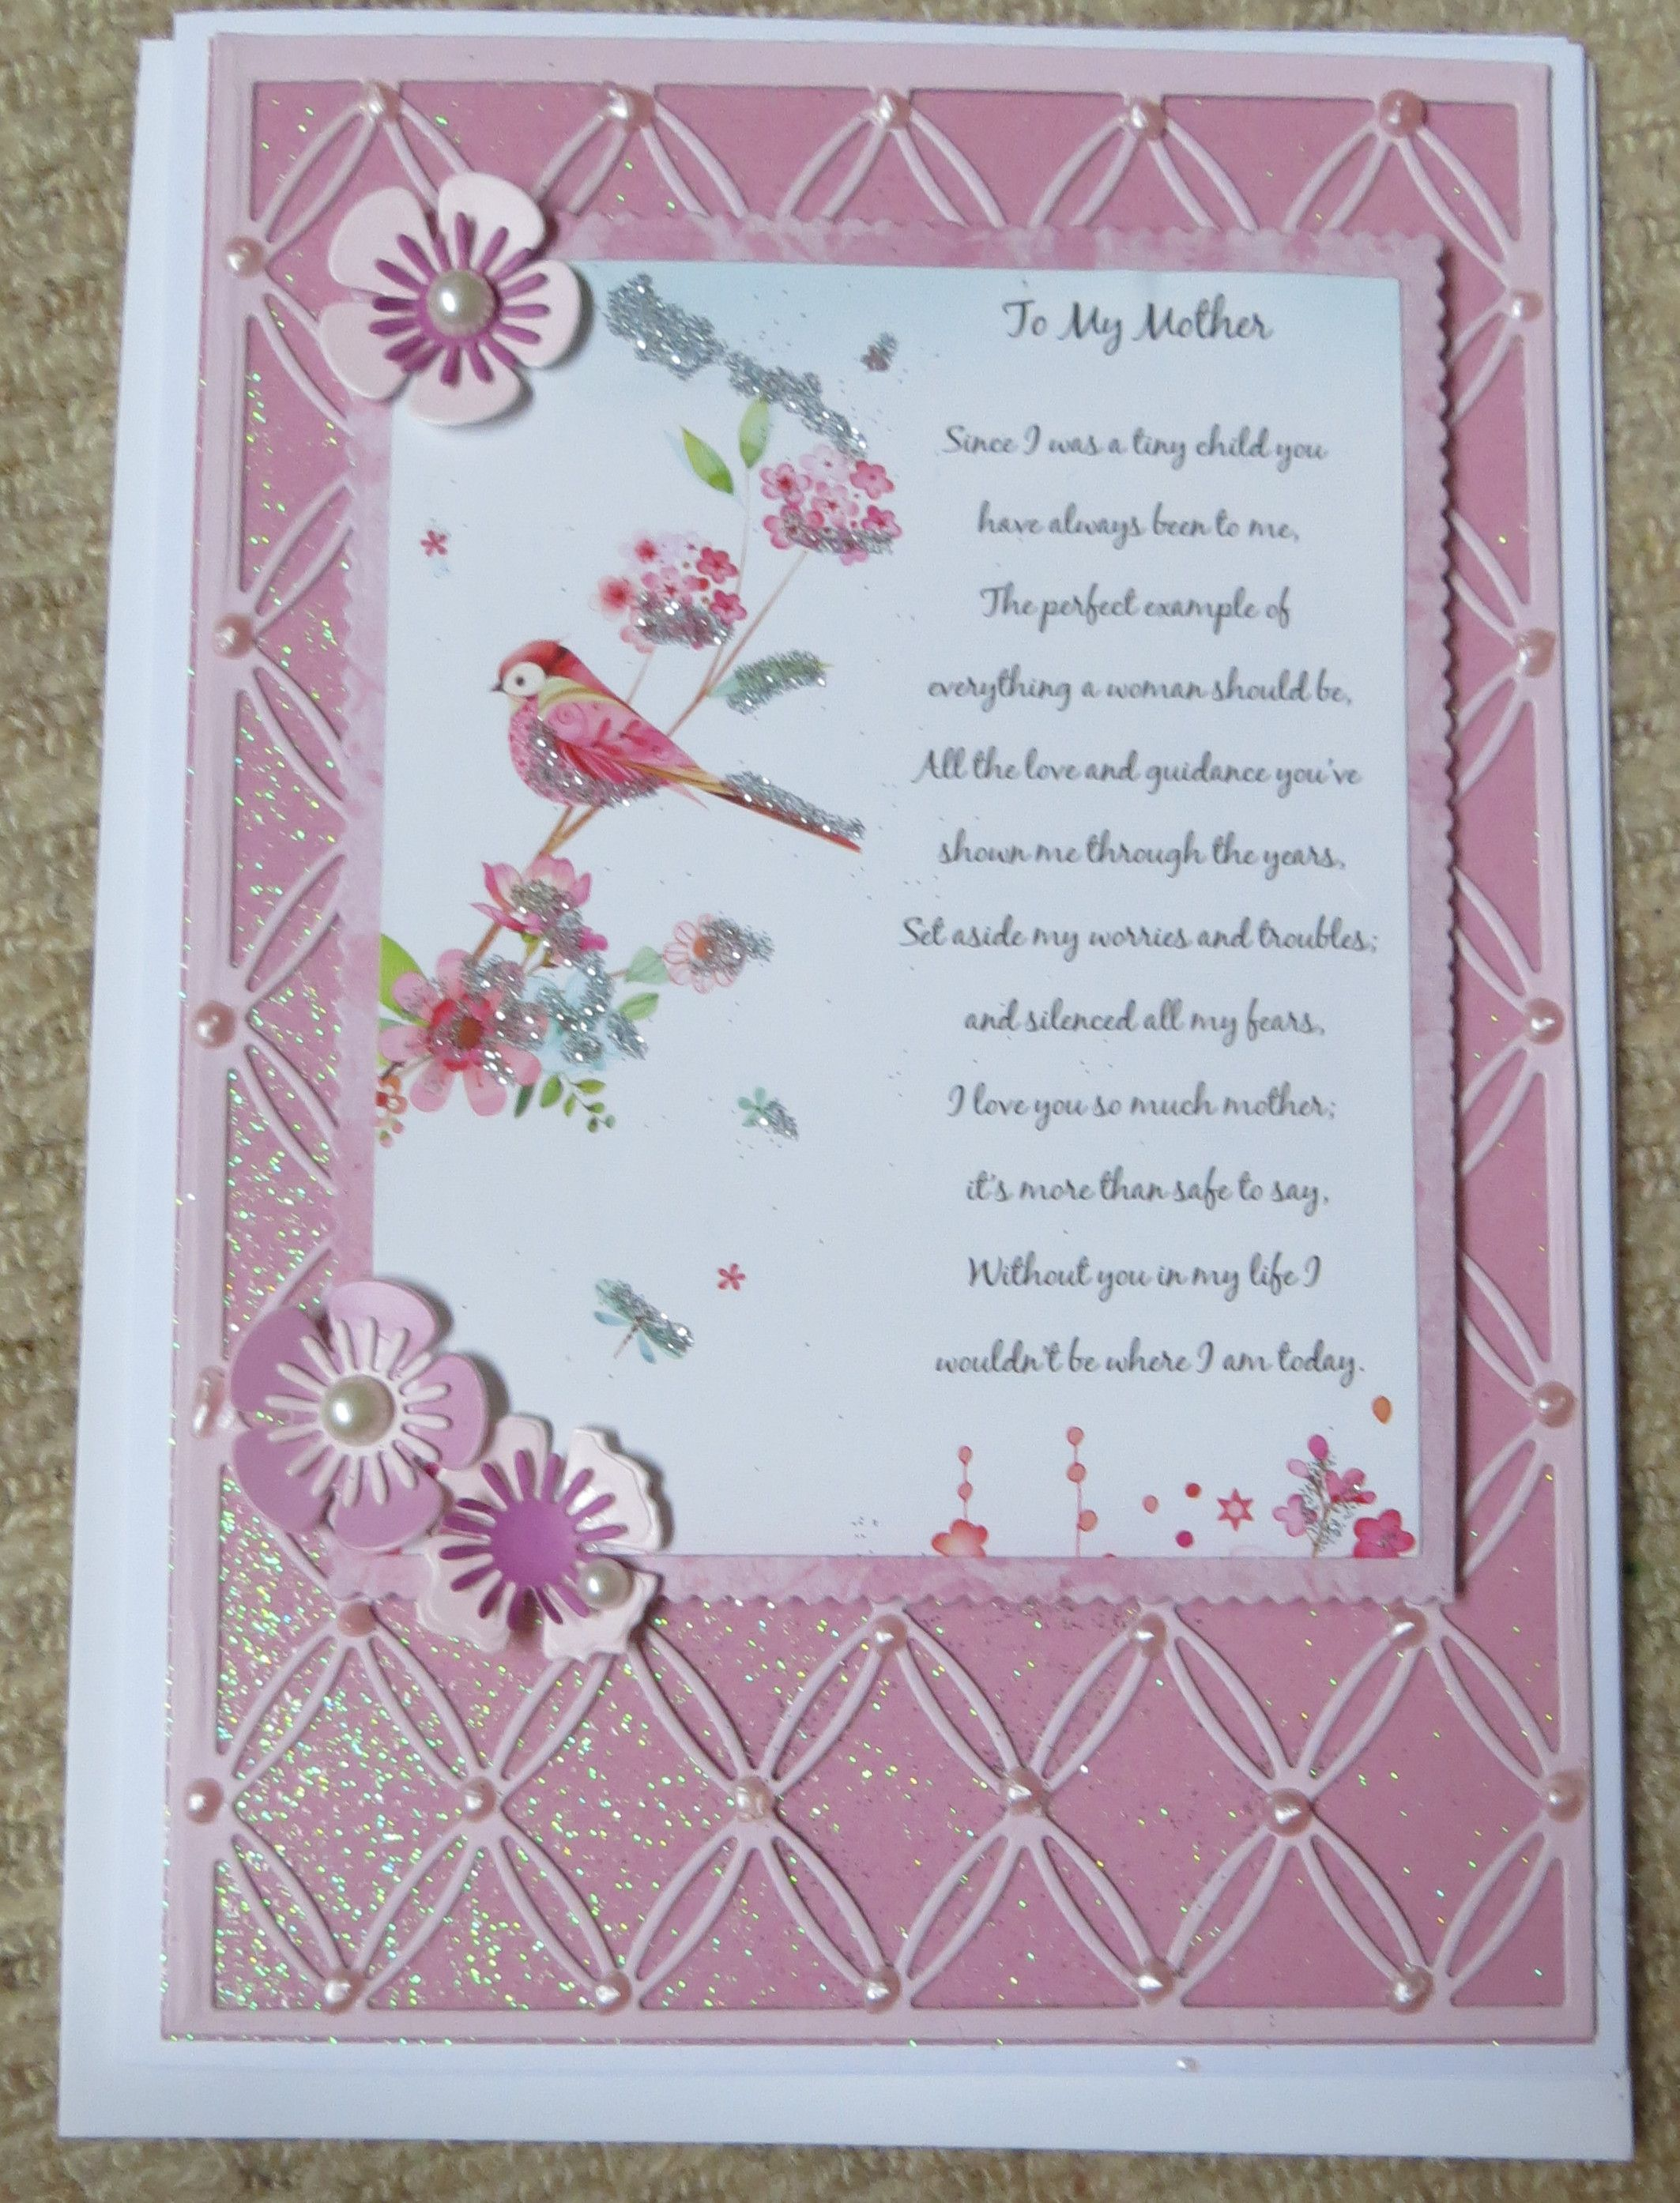 Engagement Card With Embossed Flower Sentiment Verse And Pop-Out Butterflies